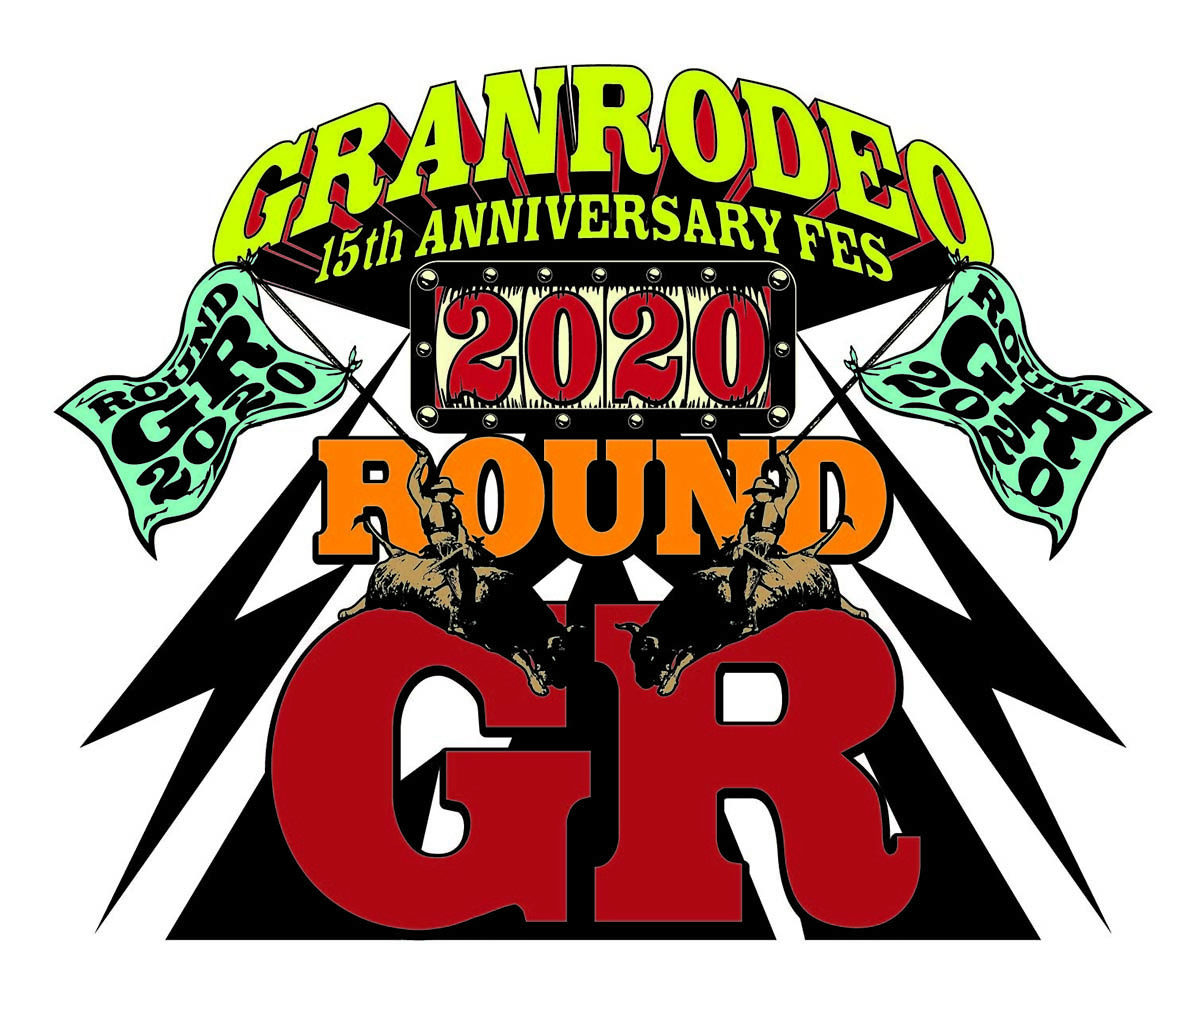 GRANRODEO主催フェス「GRANRODEO 15th ANNIVERSARY FES ROUND GR 2020」ロゴ